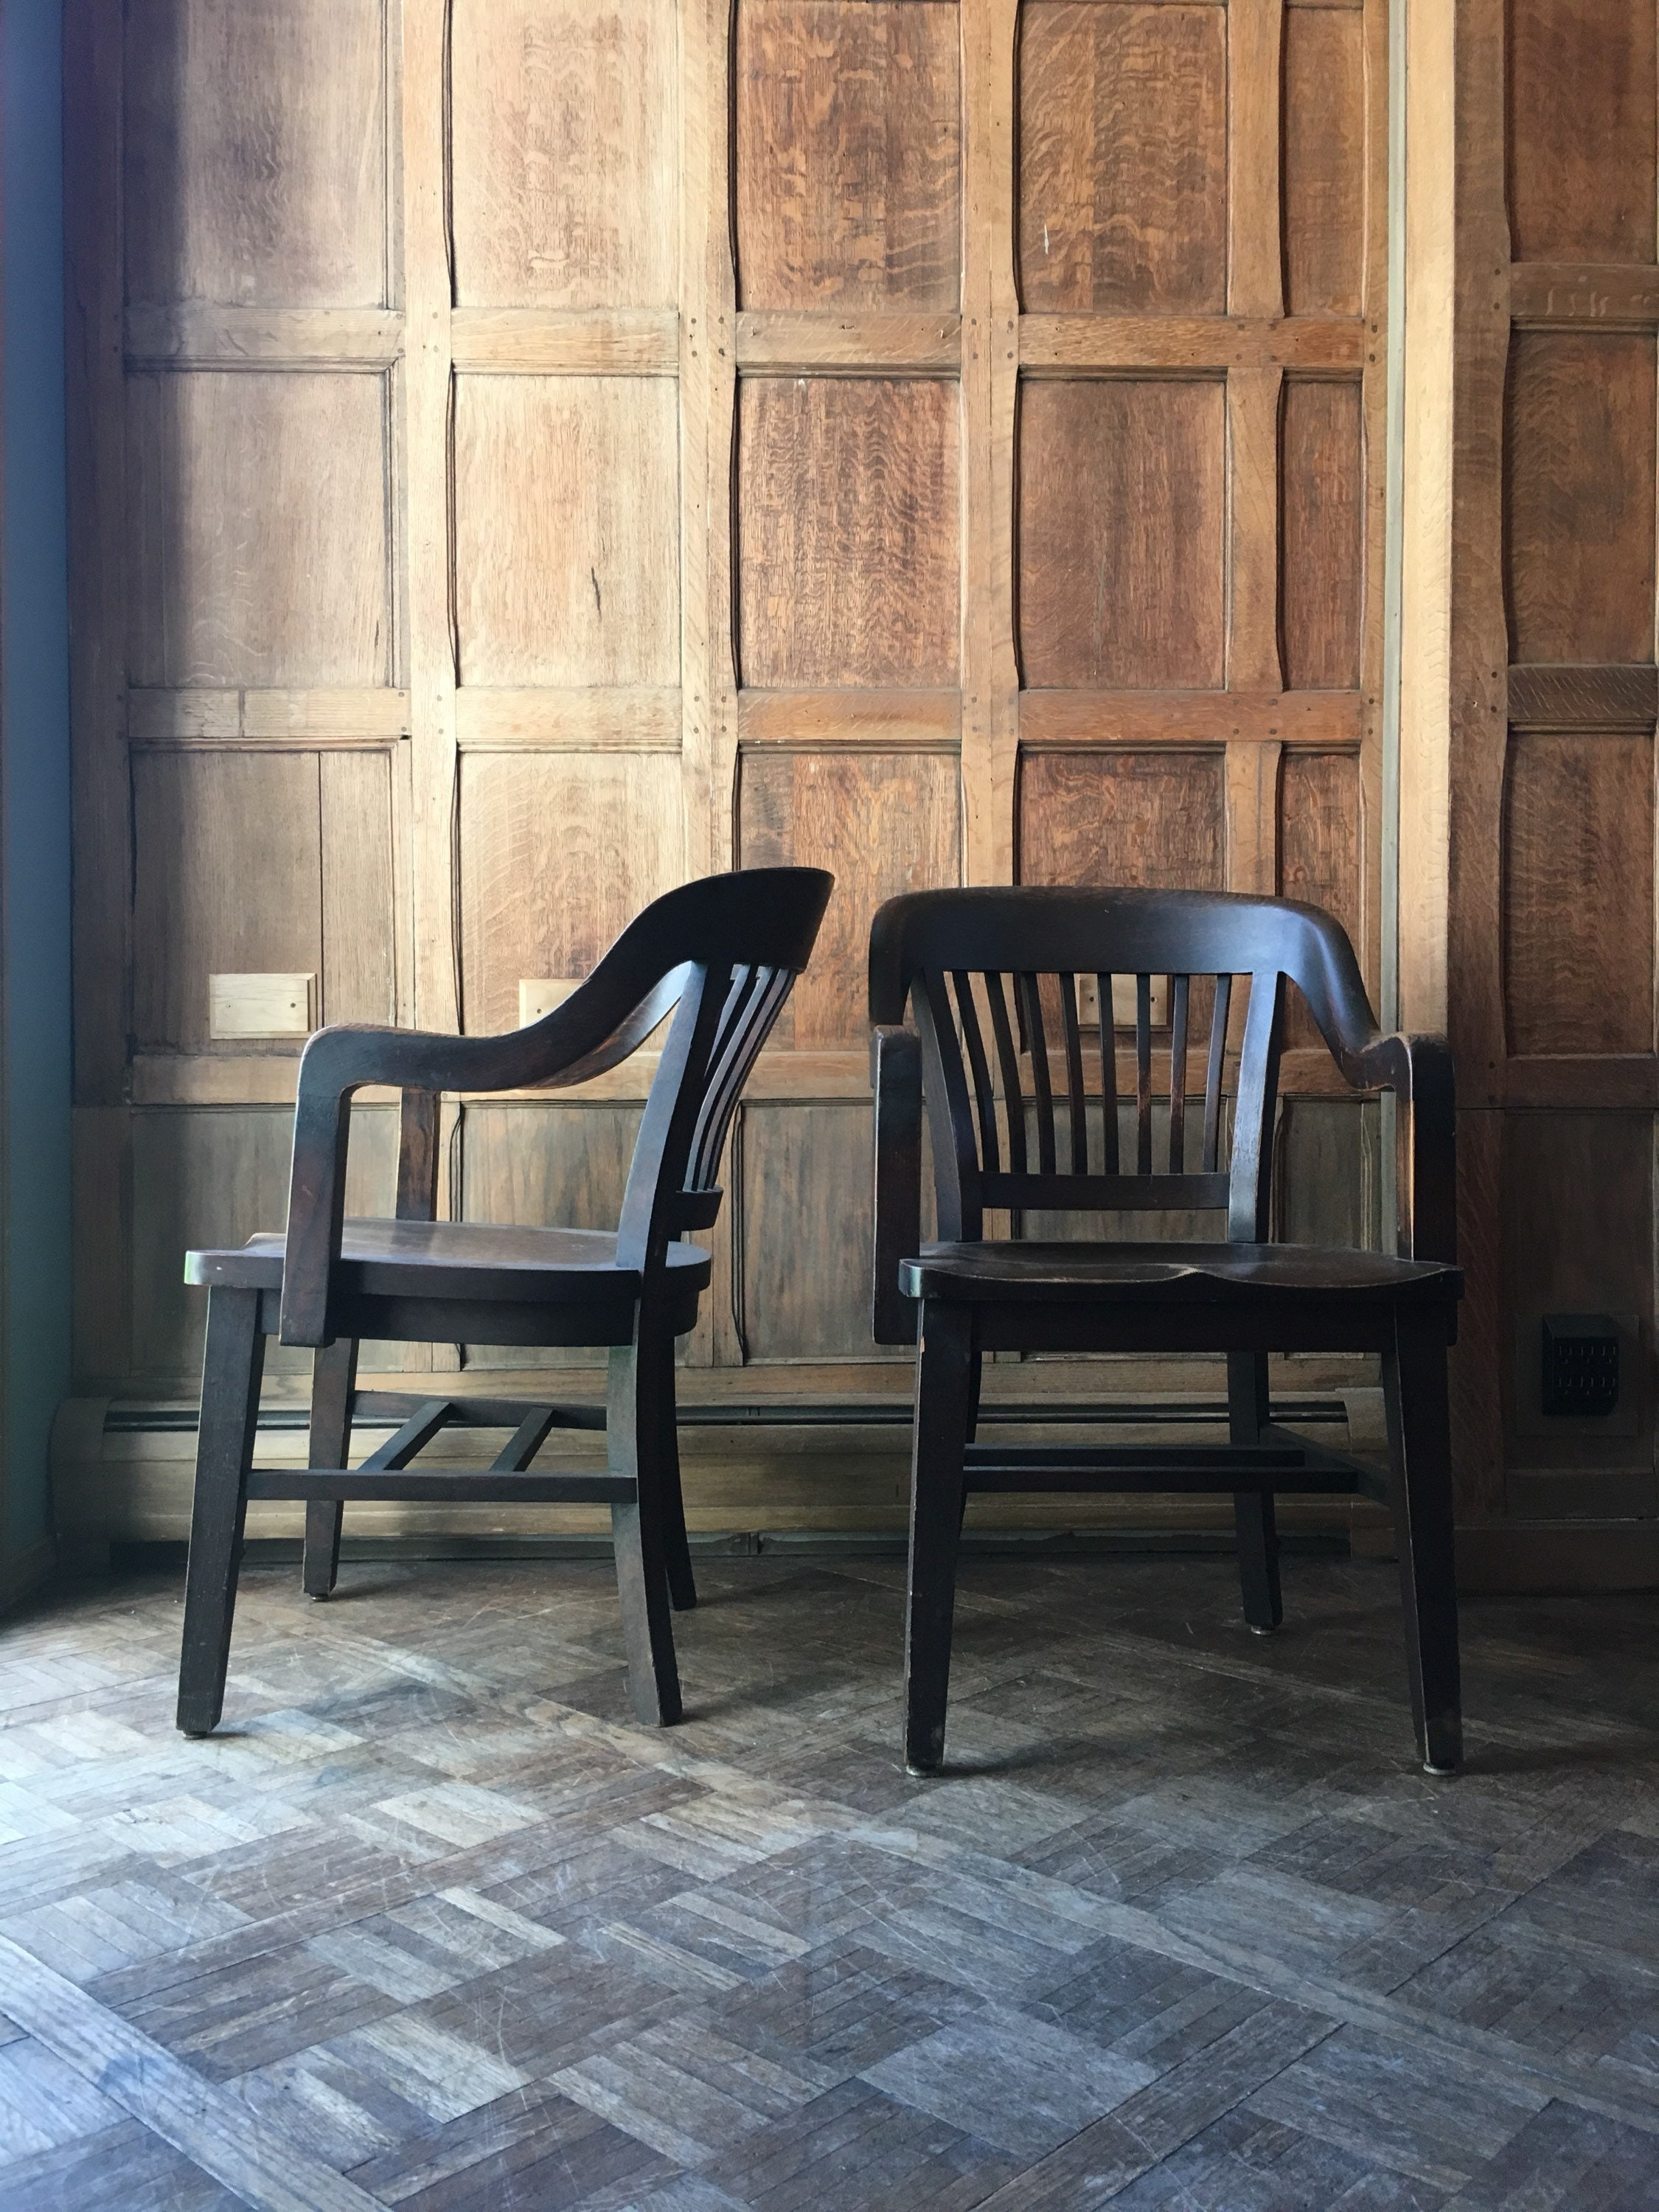 Admirable Pair Of Oak Library Chairs Vintage Bankers Chair Antique Dailytribune Chair Design For Home Dailytribuneorg